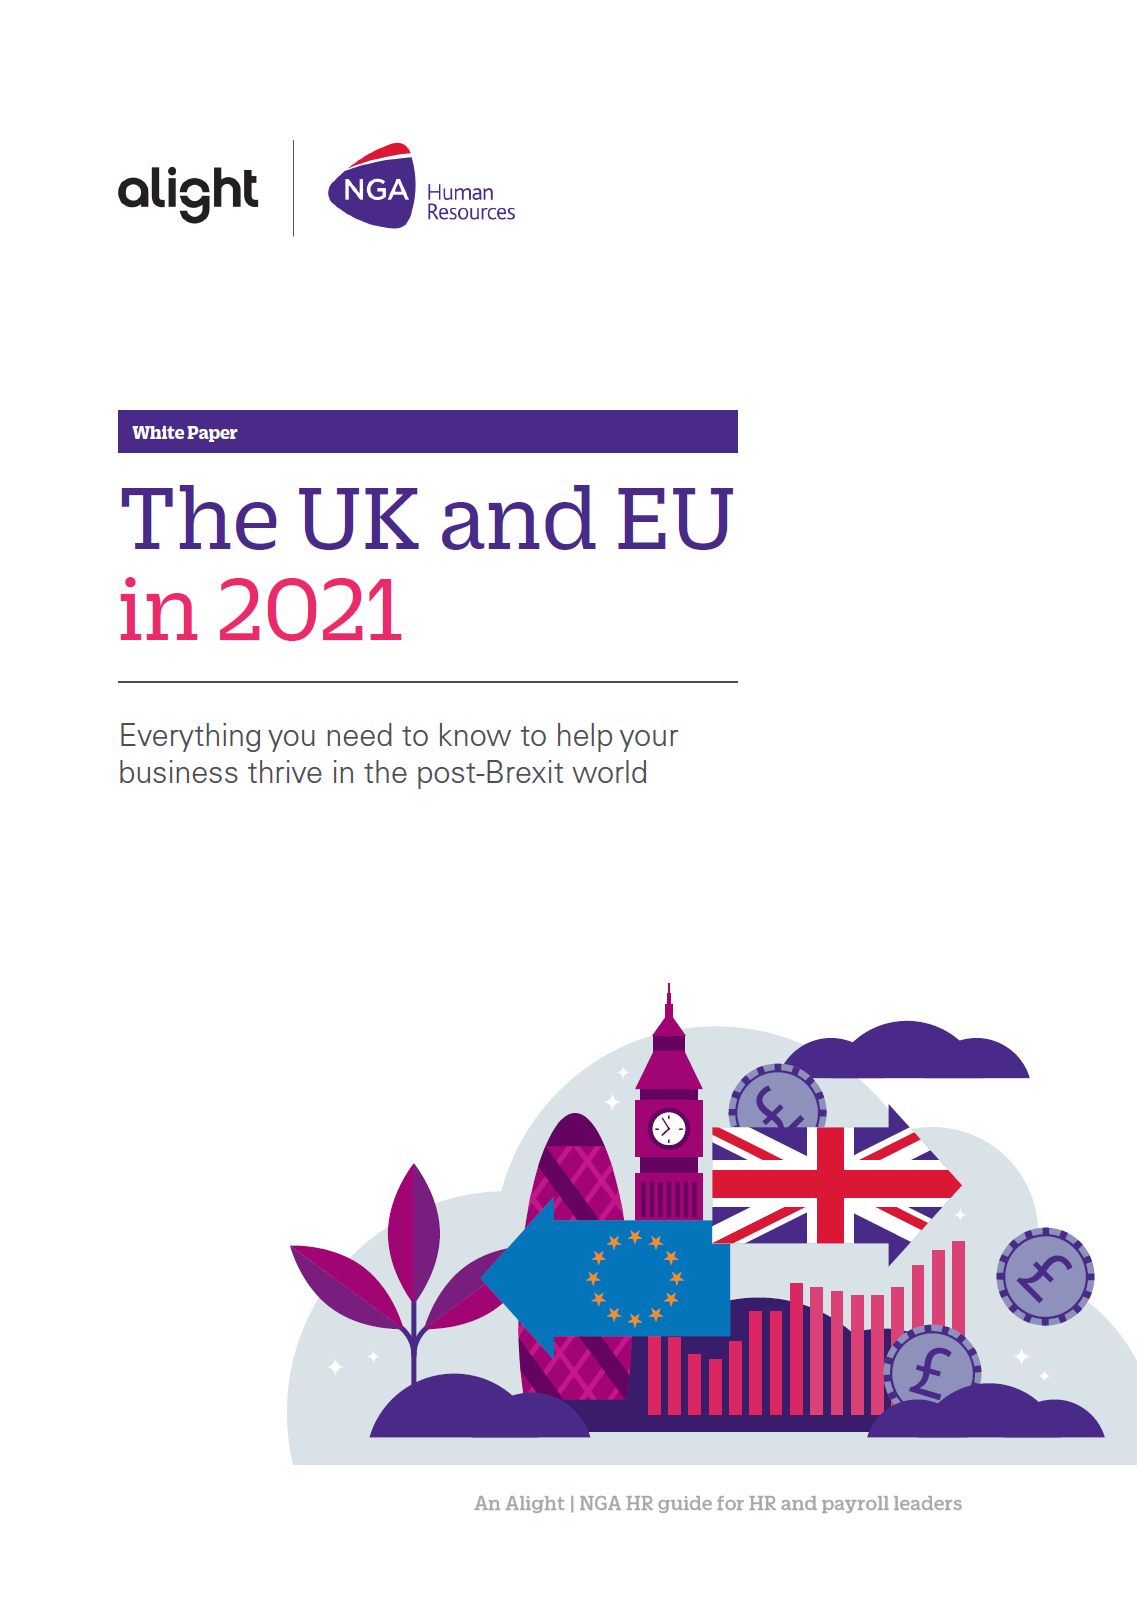 The UK and Eu in 2021 post-Brexit